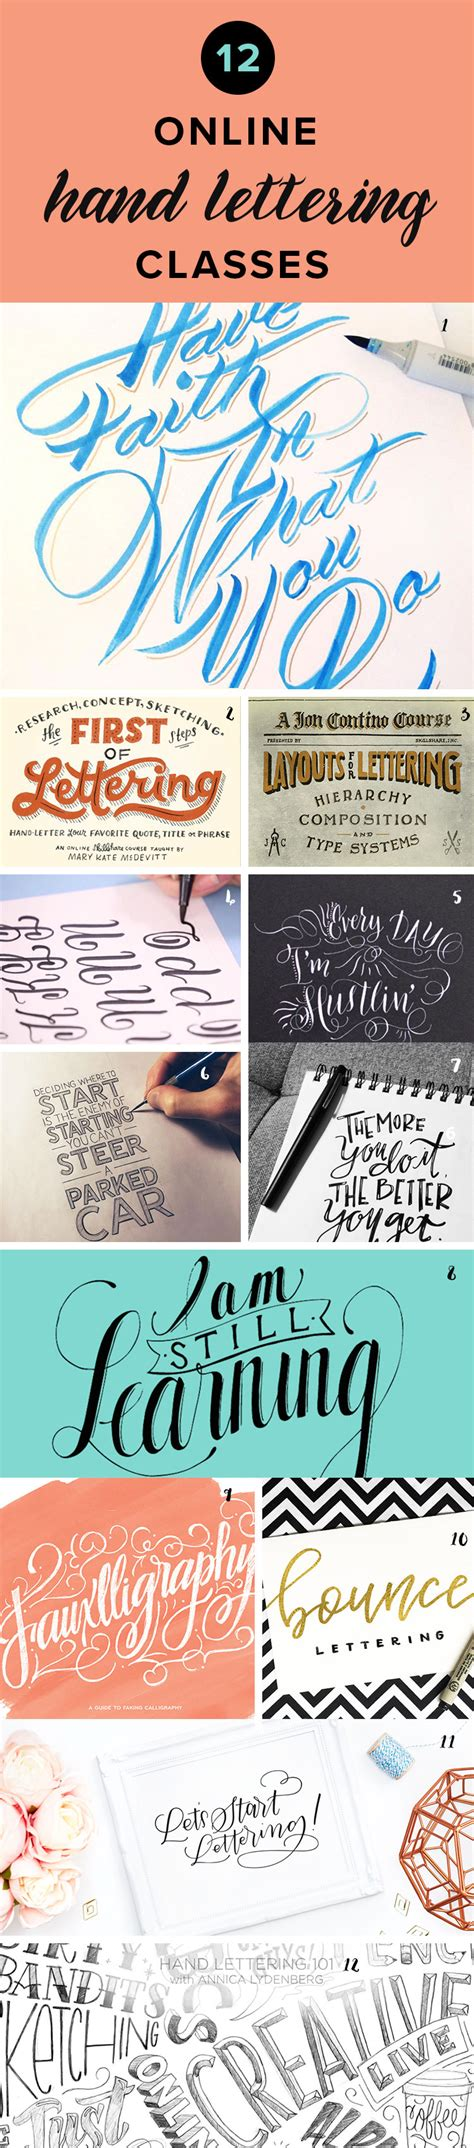 lettering tutorial online 24 awesome hand lettering tutorials